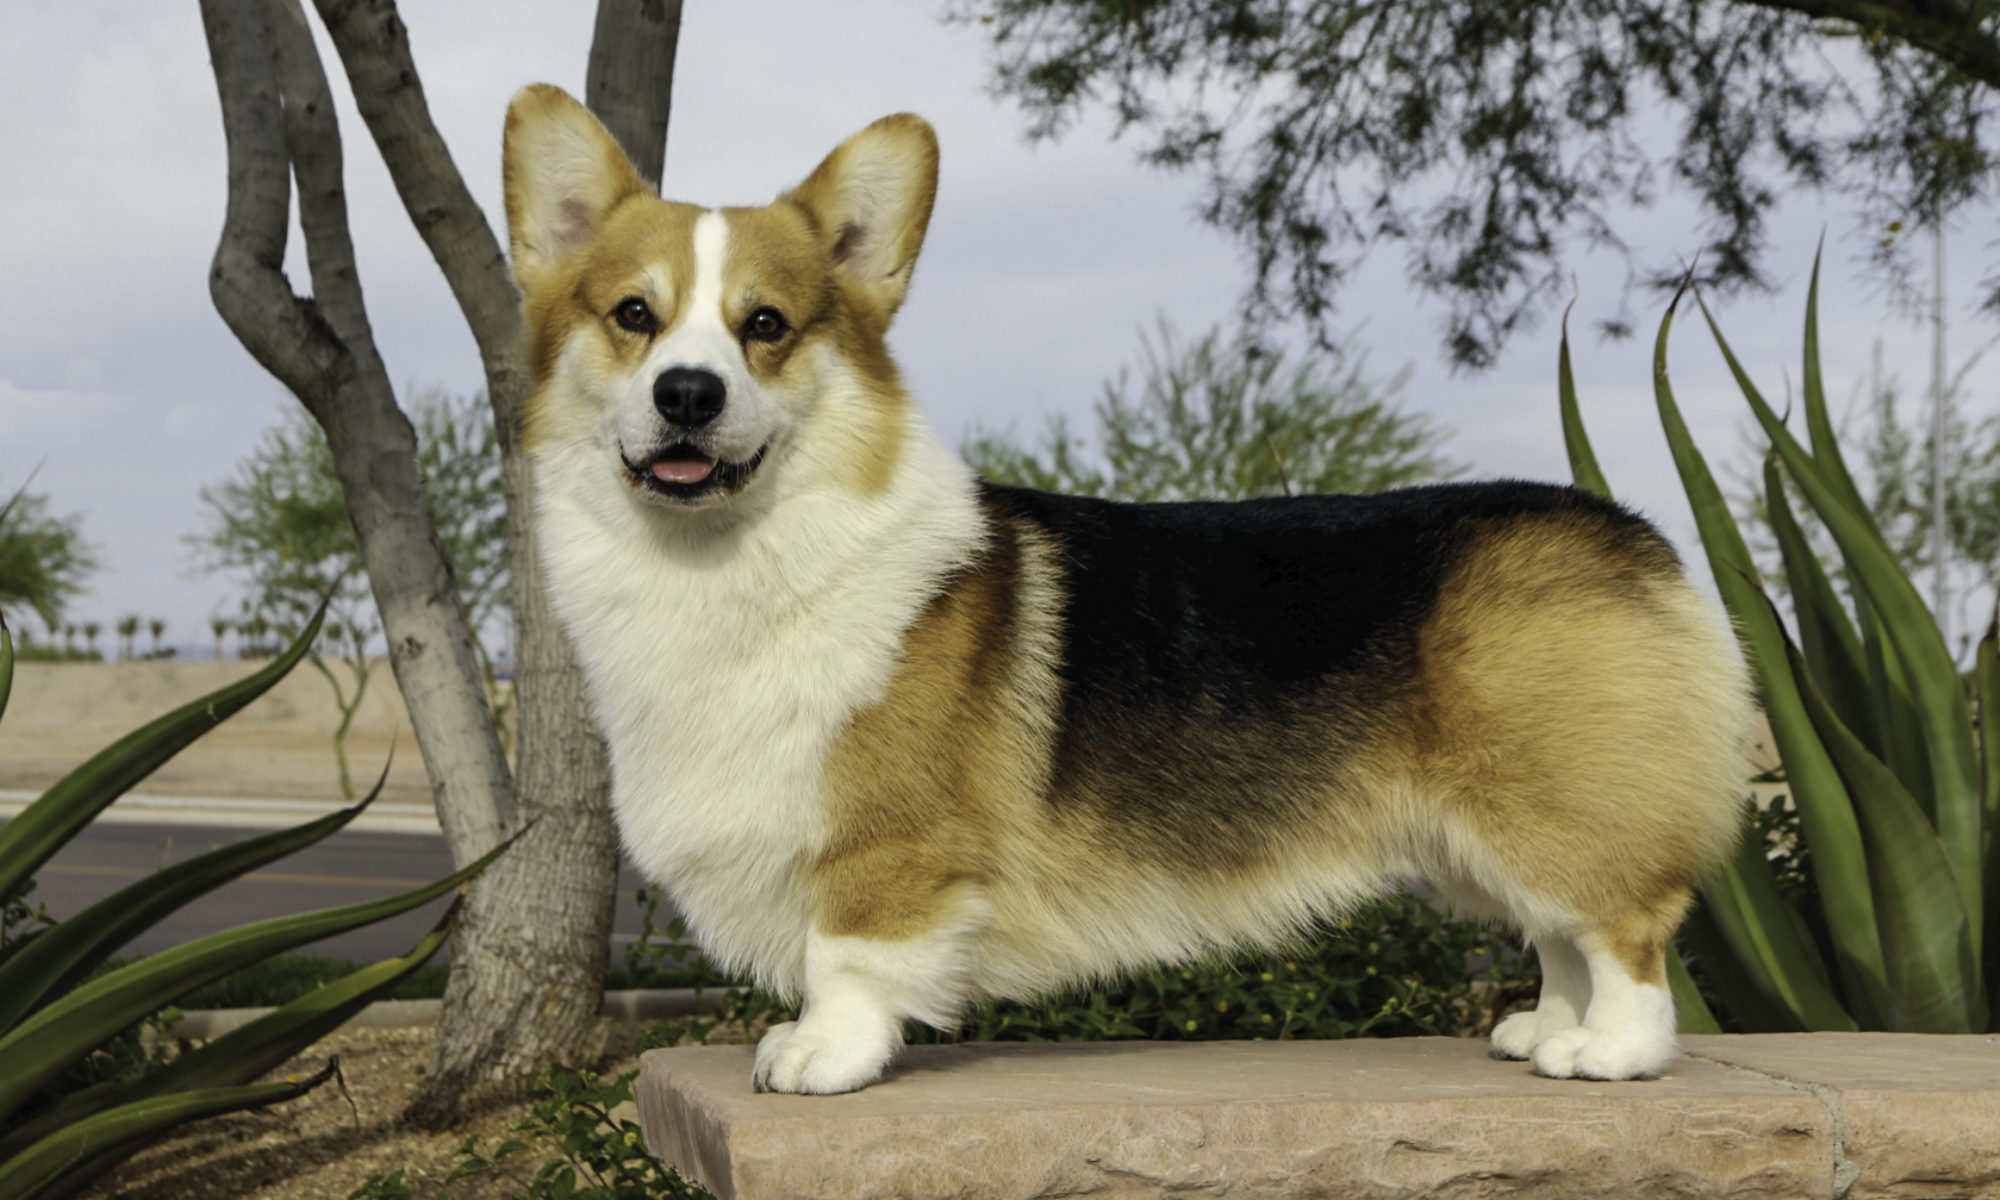 The Smiling Corgi